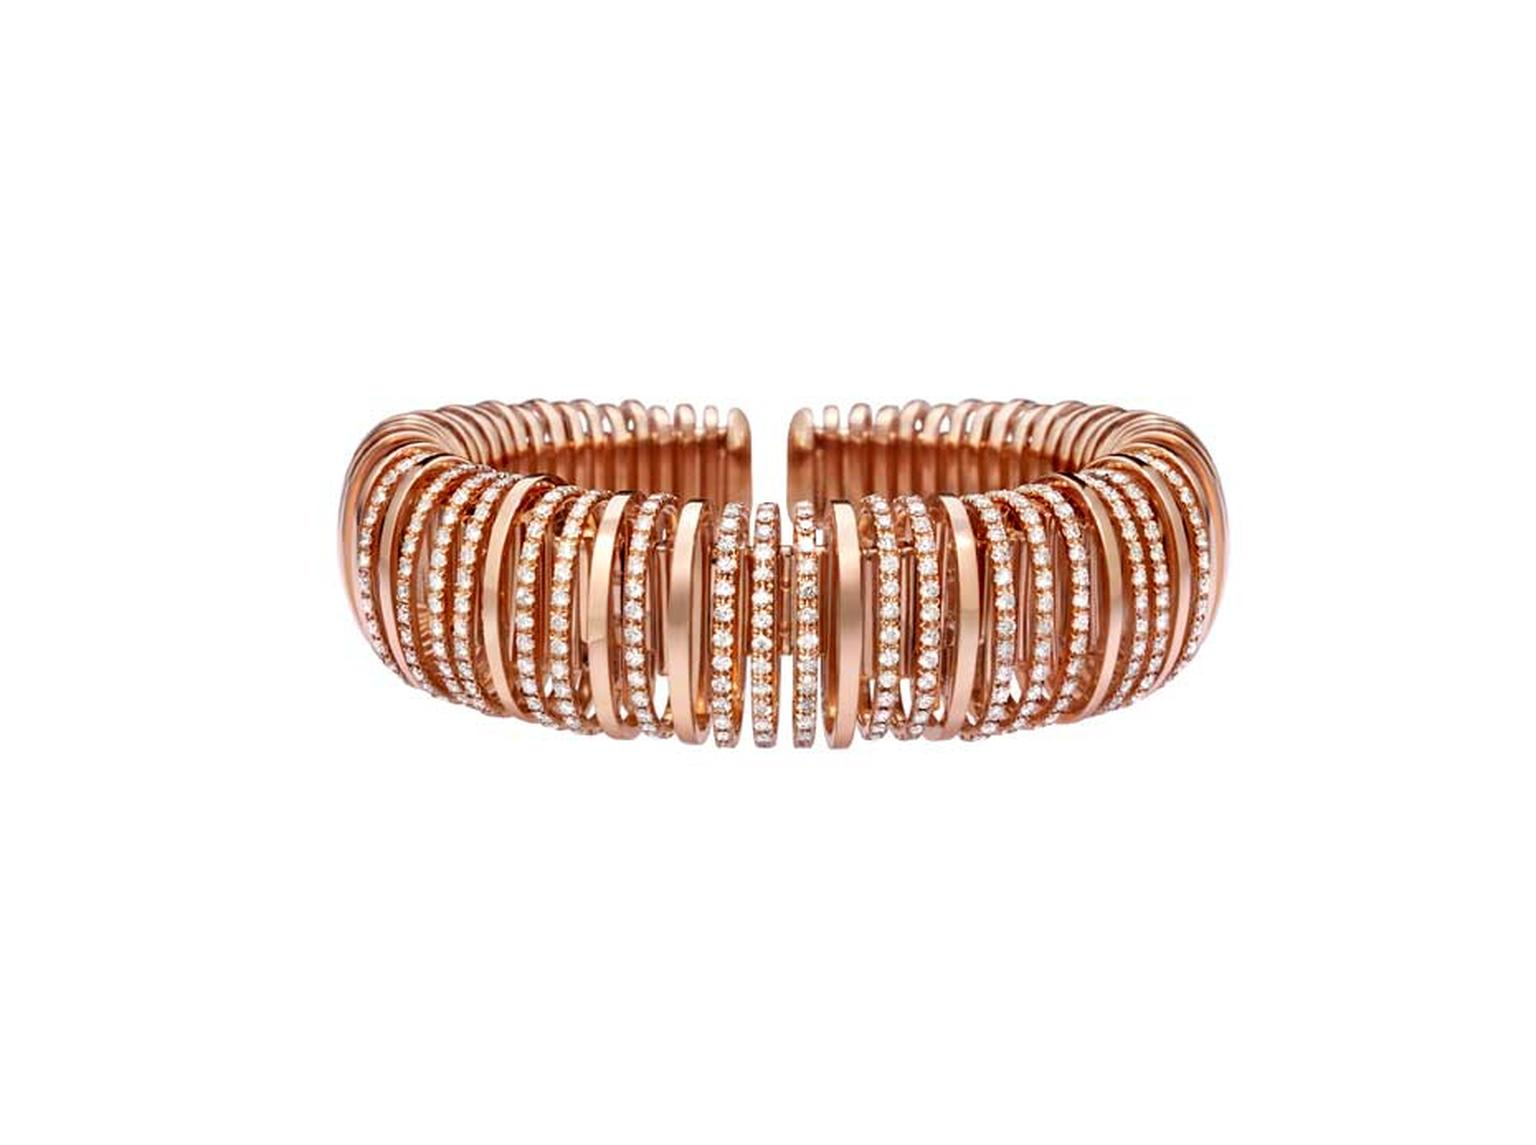 Mattia Cielo bracelet in rose gold with white pavé diamonds from the new Pavone collection.